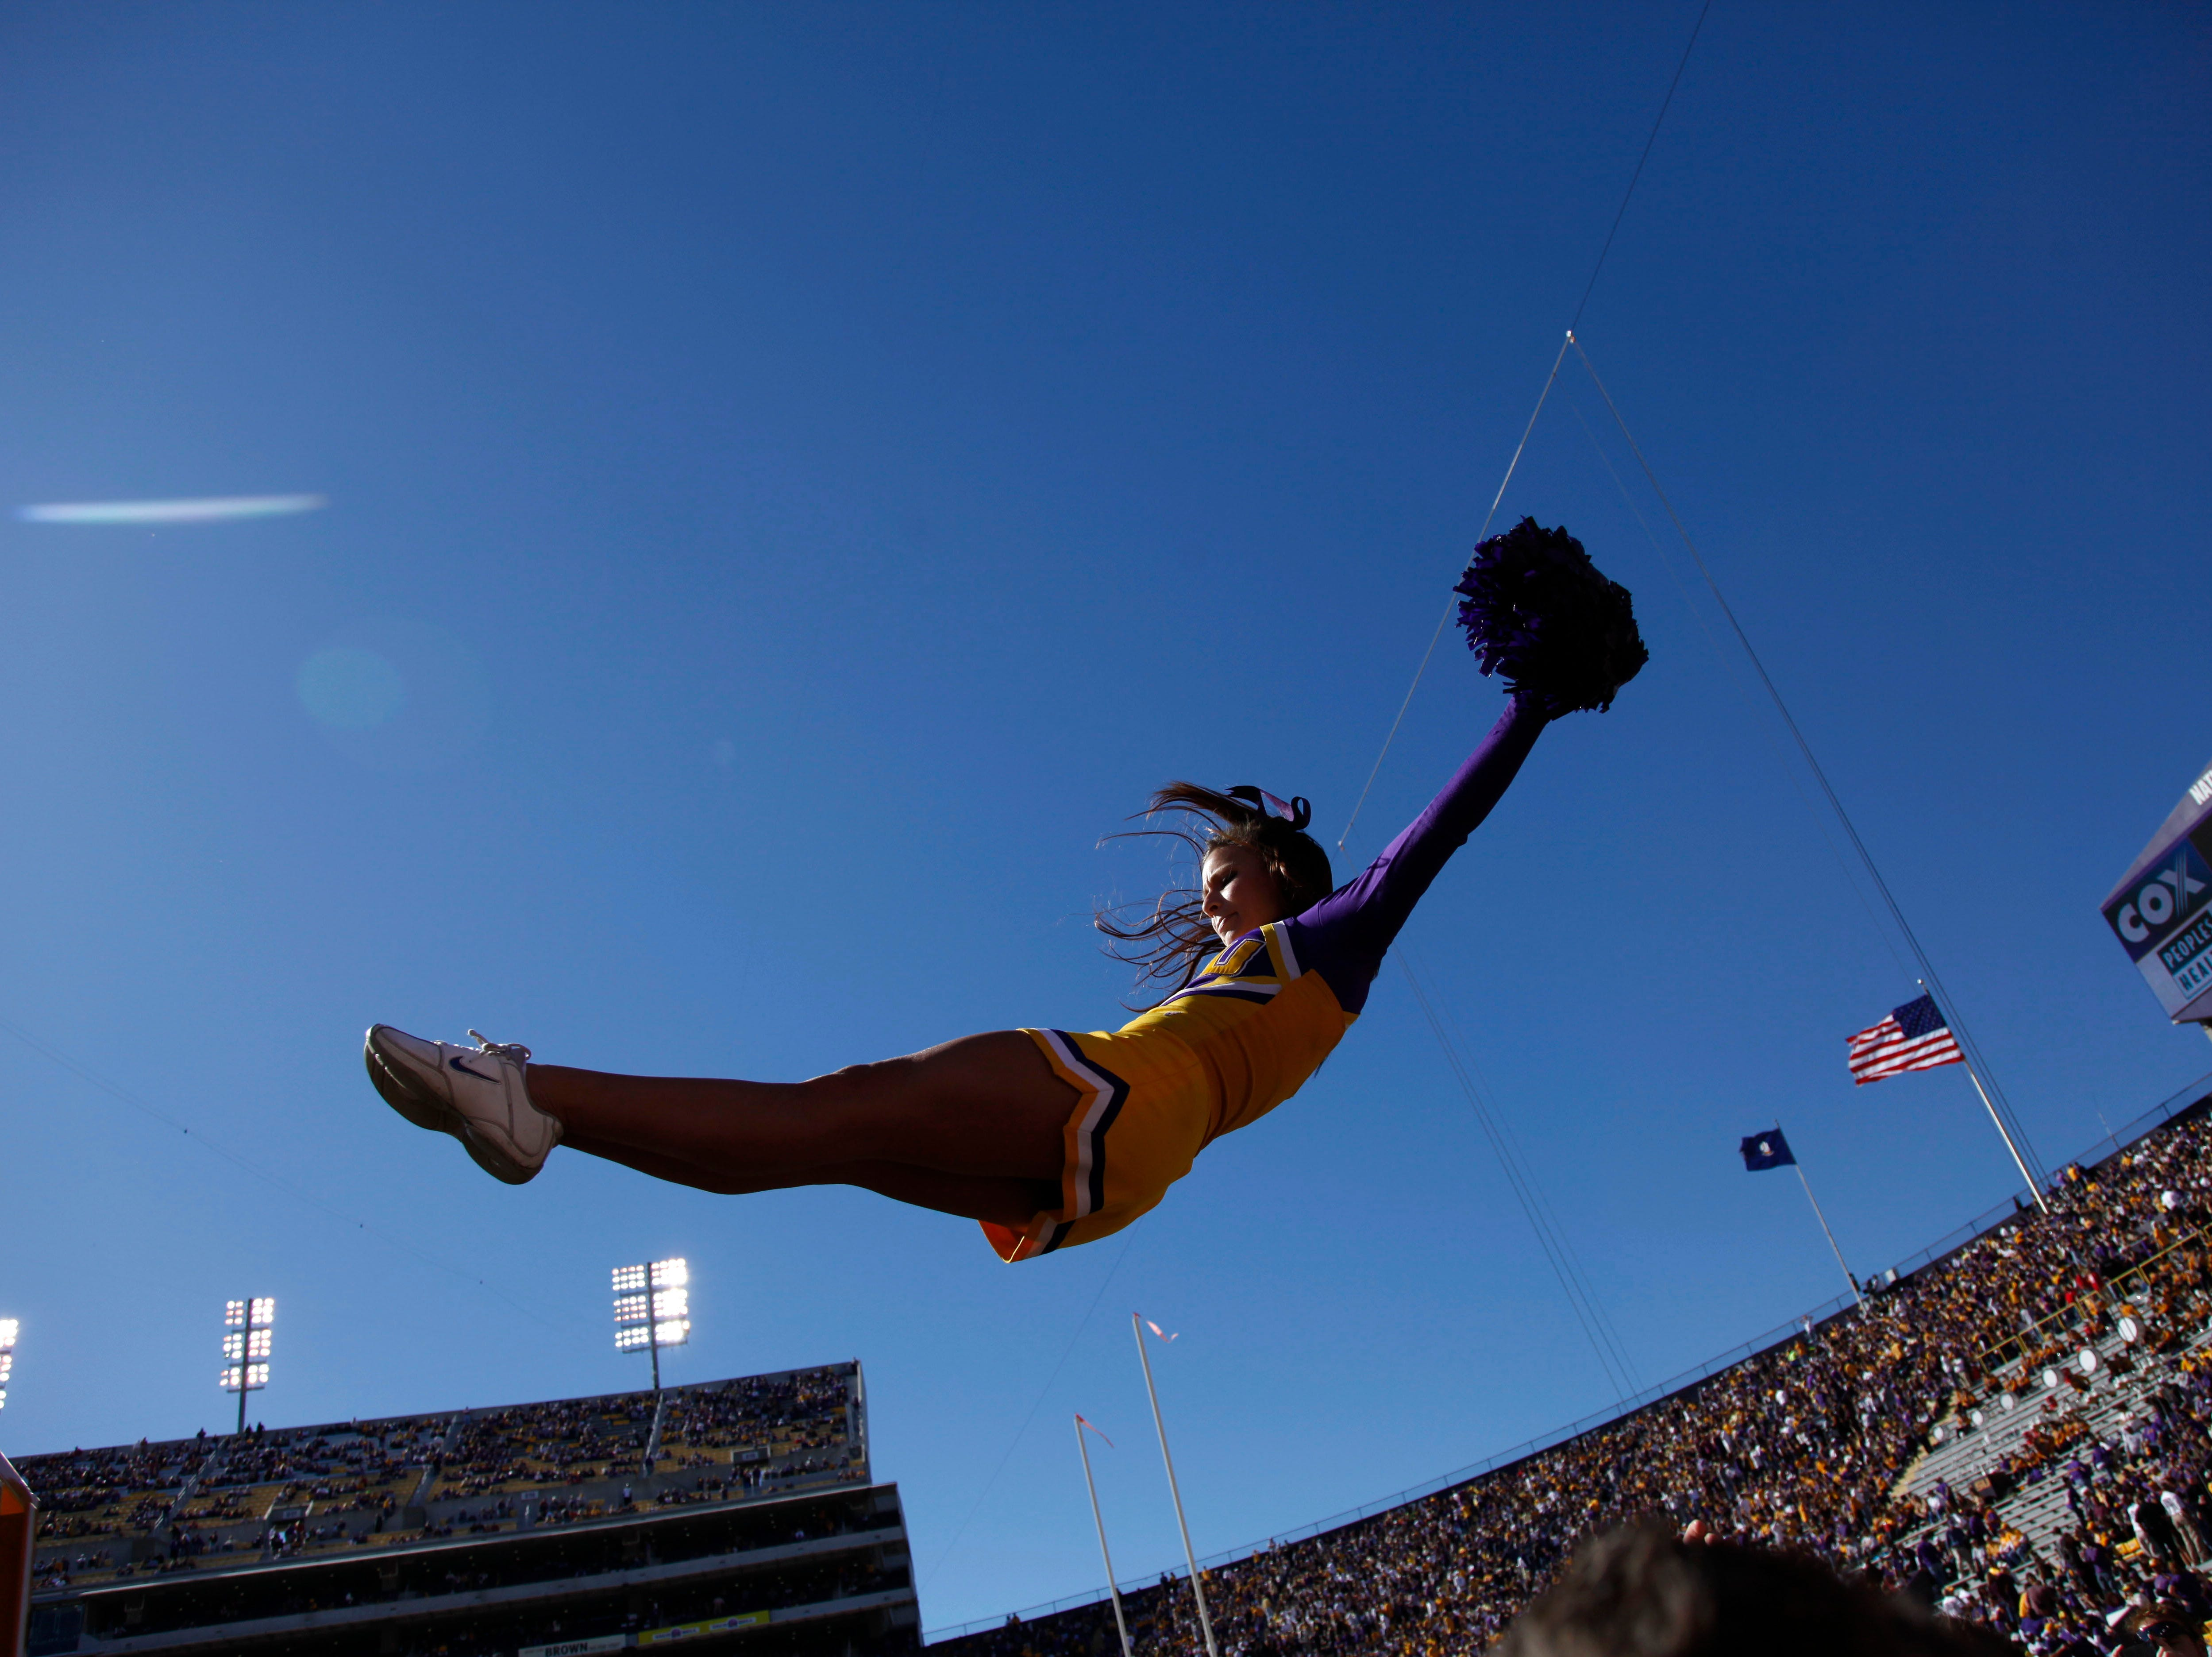 An LSU cheerleader leaps from the truck carrying Mike the TIger mascot, a live bengal tiger, prior to their NCAA college football game against Alabama in Baton Rouge, La., Saturday, Nov. 6, 2010. (AP Photo/Gerald Herbert)